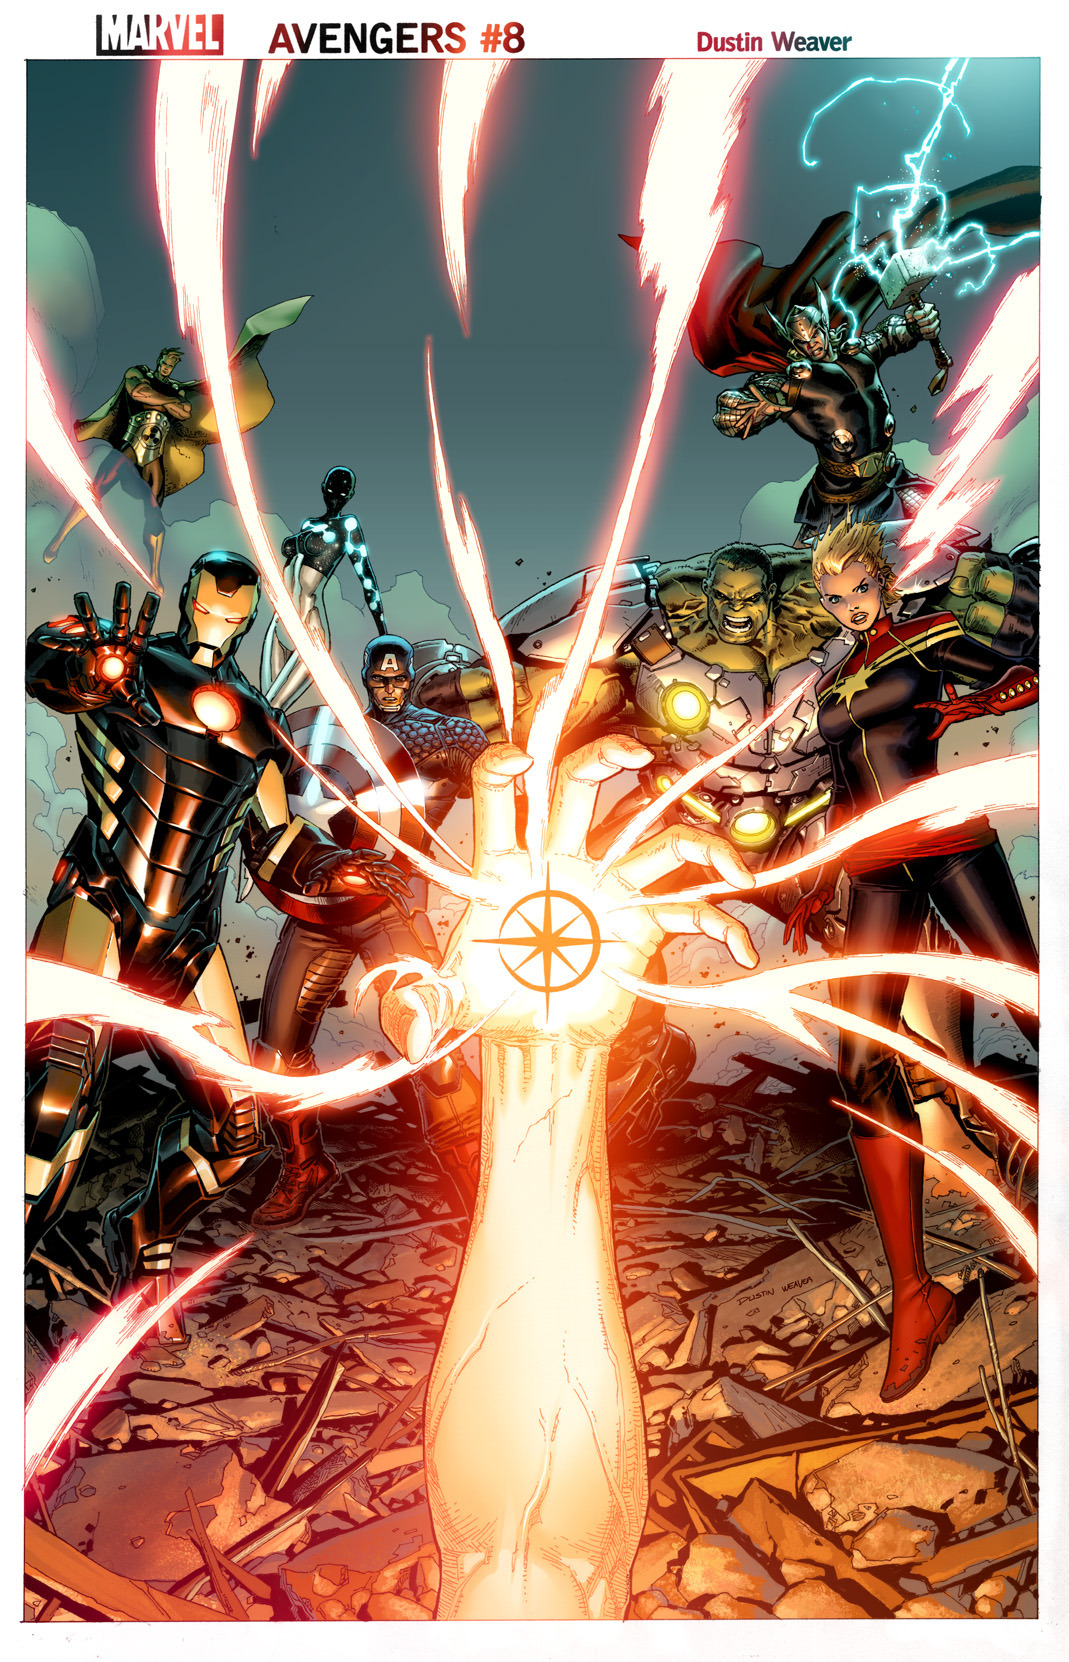 Avengers #8 cover by me with colors by Justin Ponsor. -Dustin